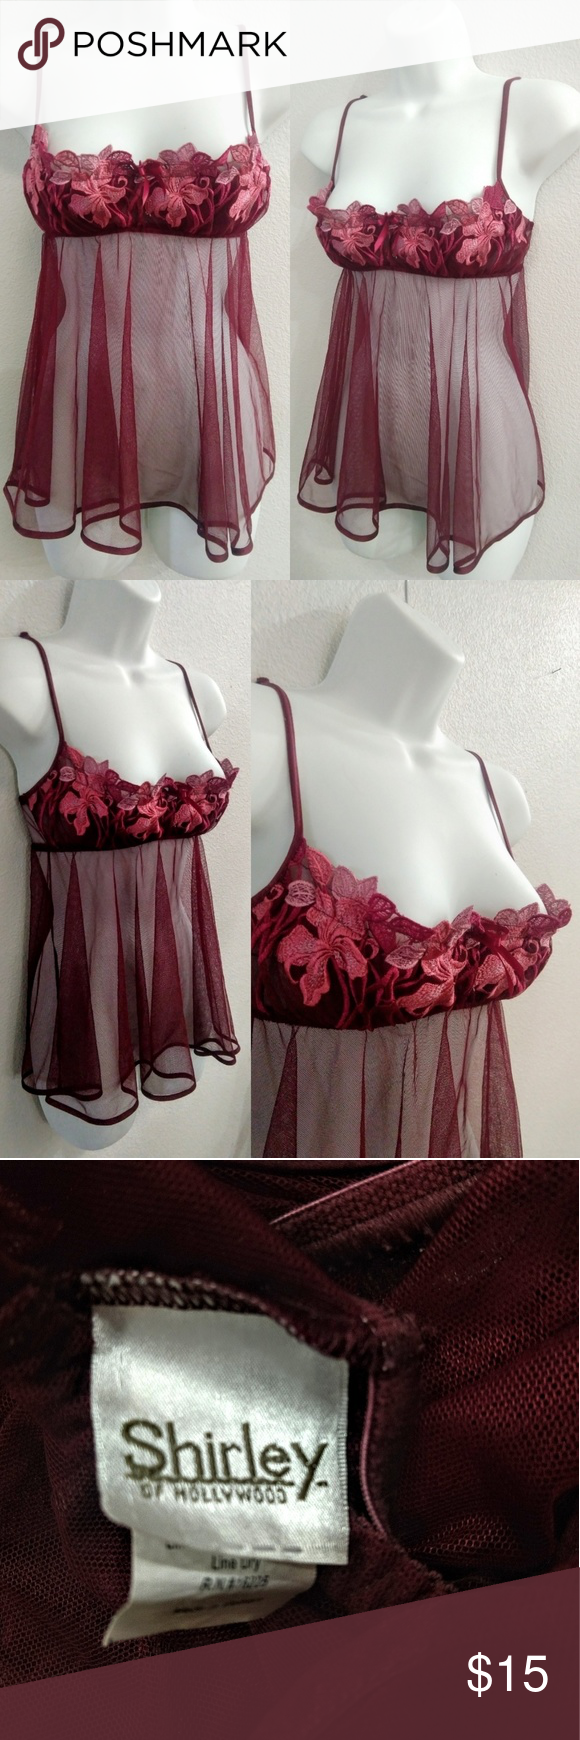 26ca259529cae Shirley of Hollywood Chemise lingerie Size small chemise. Shirley of  Hollywood brand. Shirley of Hollywood Intimates   Sleepwear Chemises   Slips